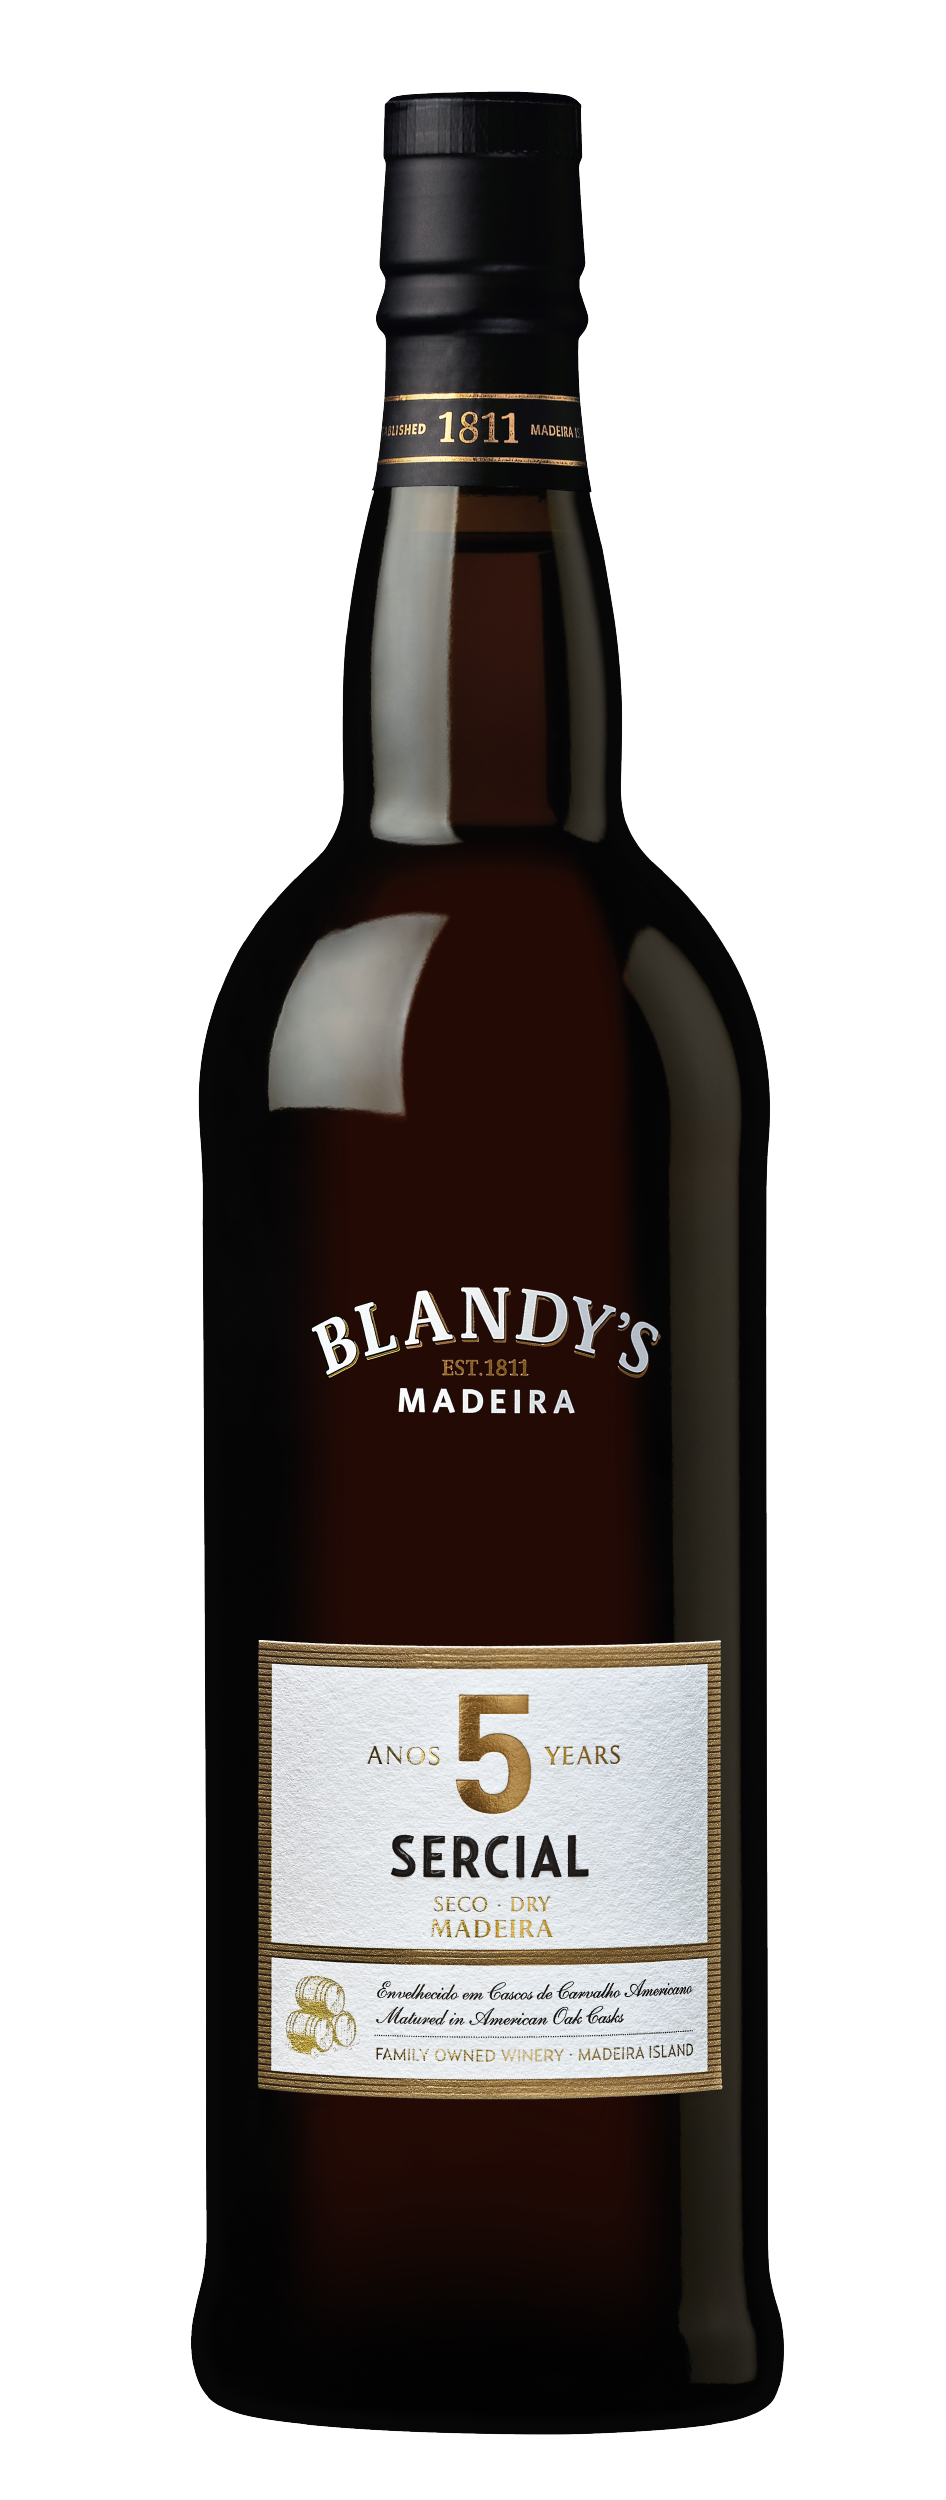 Product Image for BLANDY'S SERCIAL 5 YEAR OLD